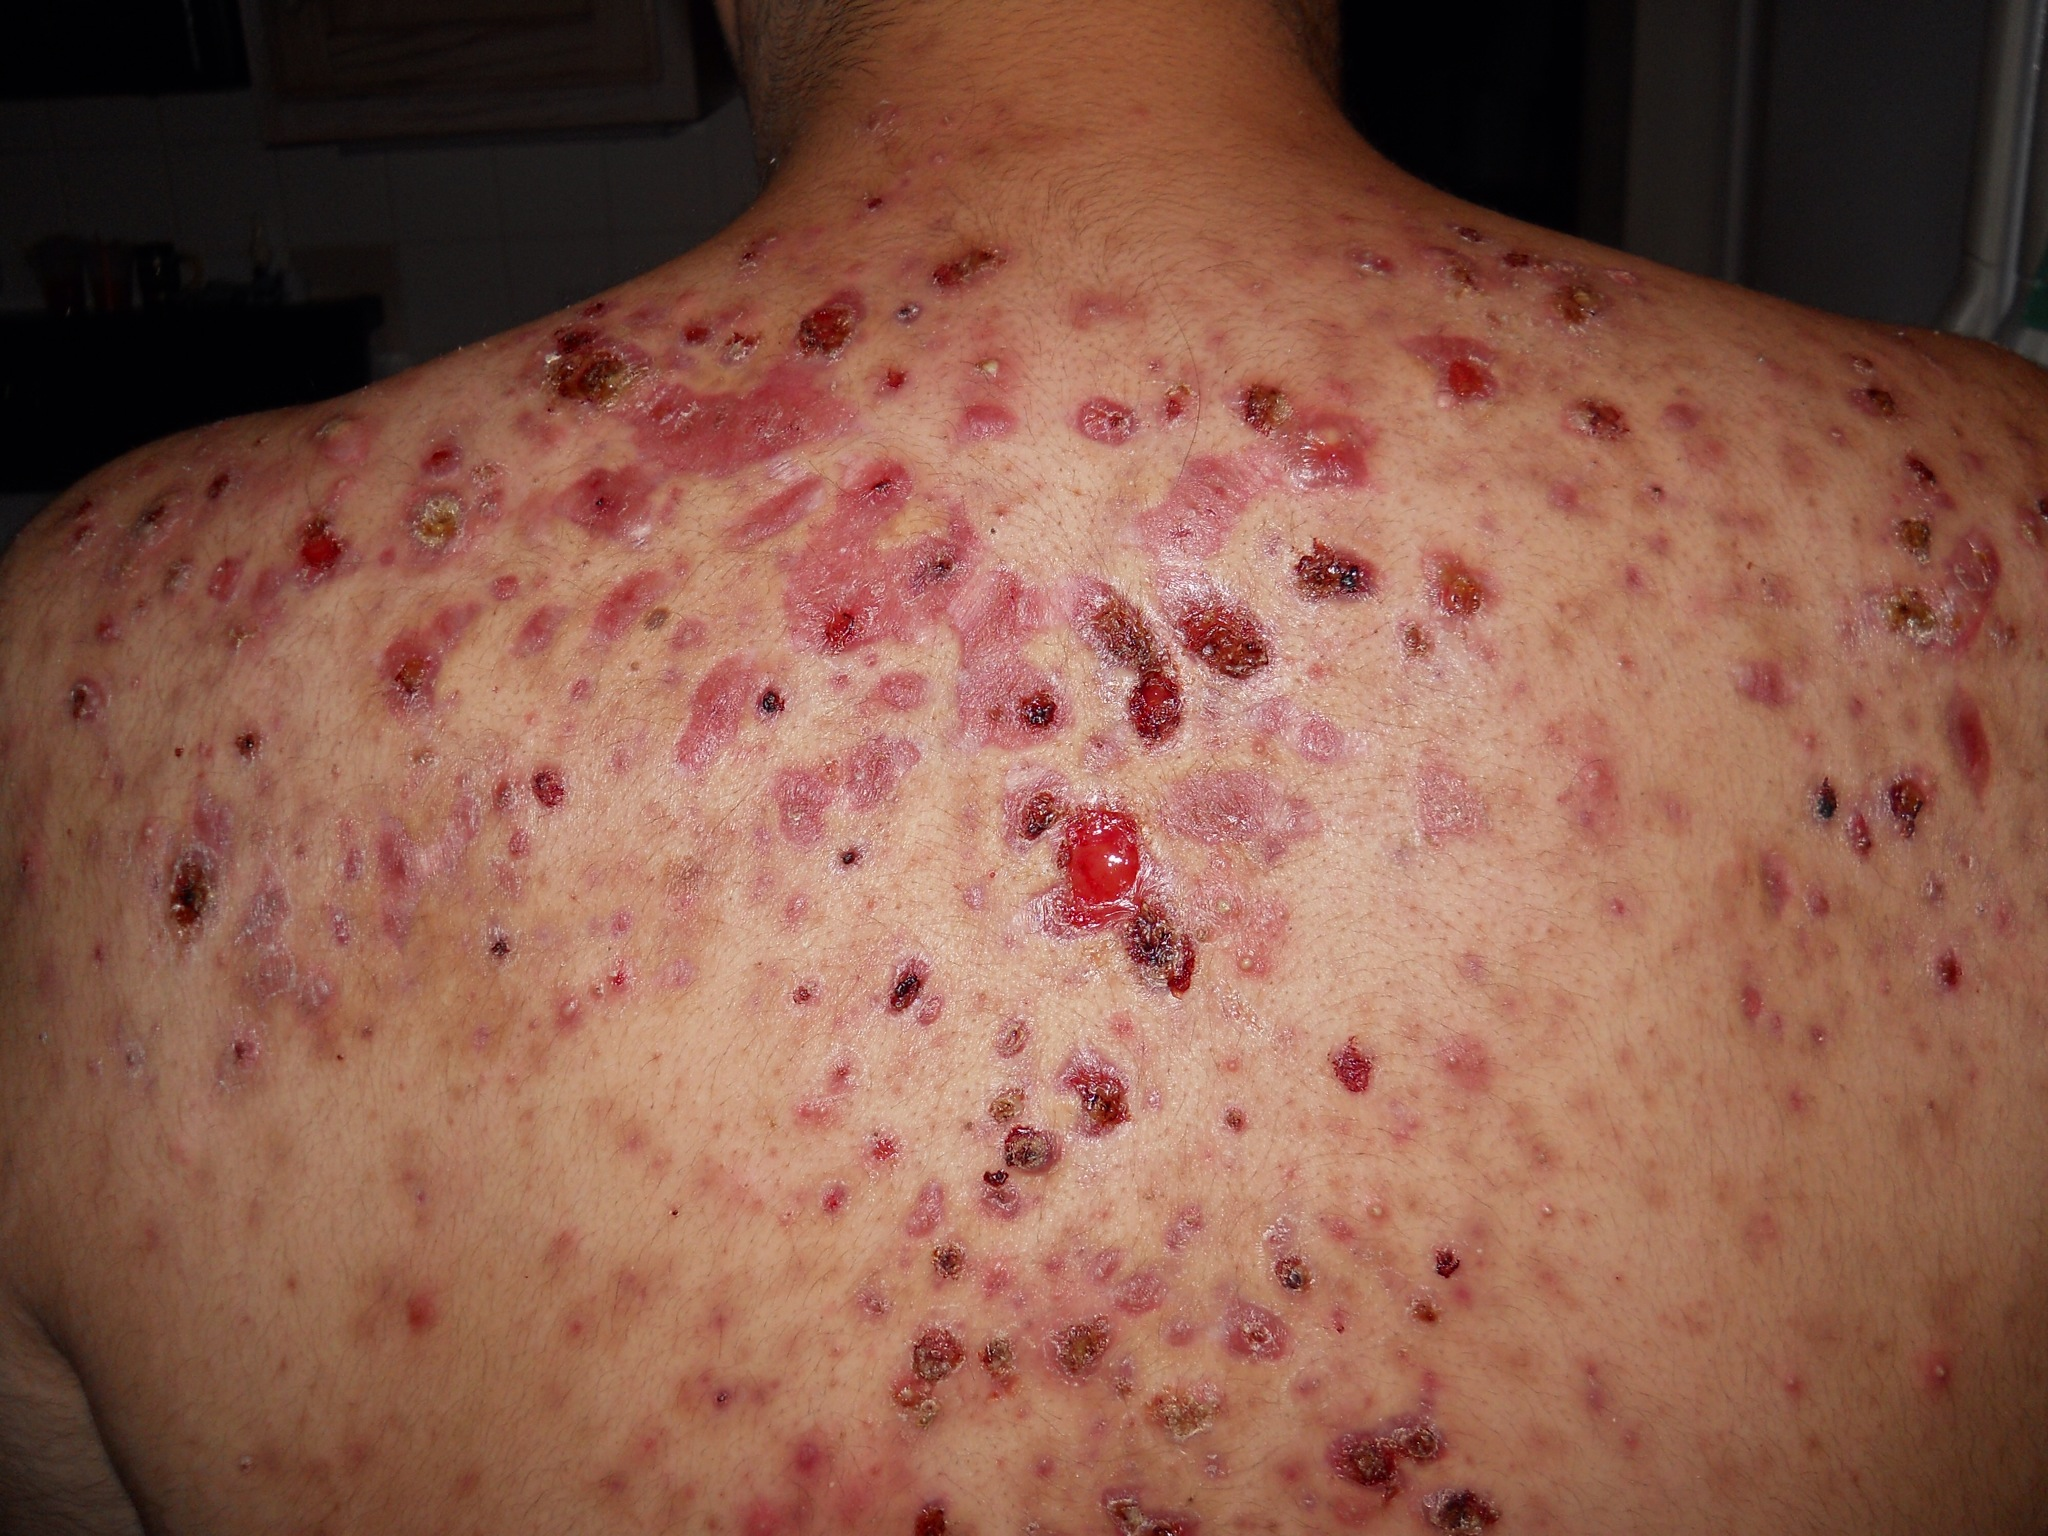 Severe nodular cystic acne, the full story - Back/Body ... Severe Cystic Acne Scars